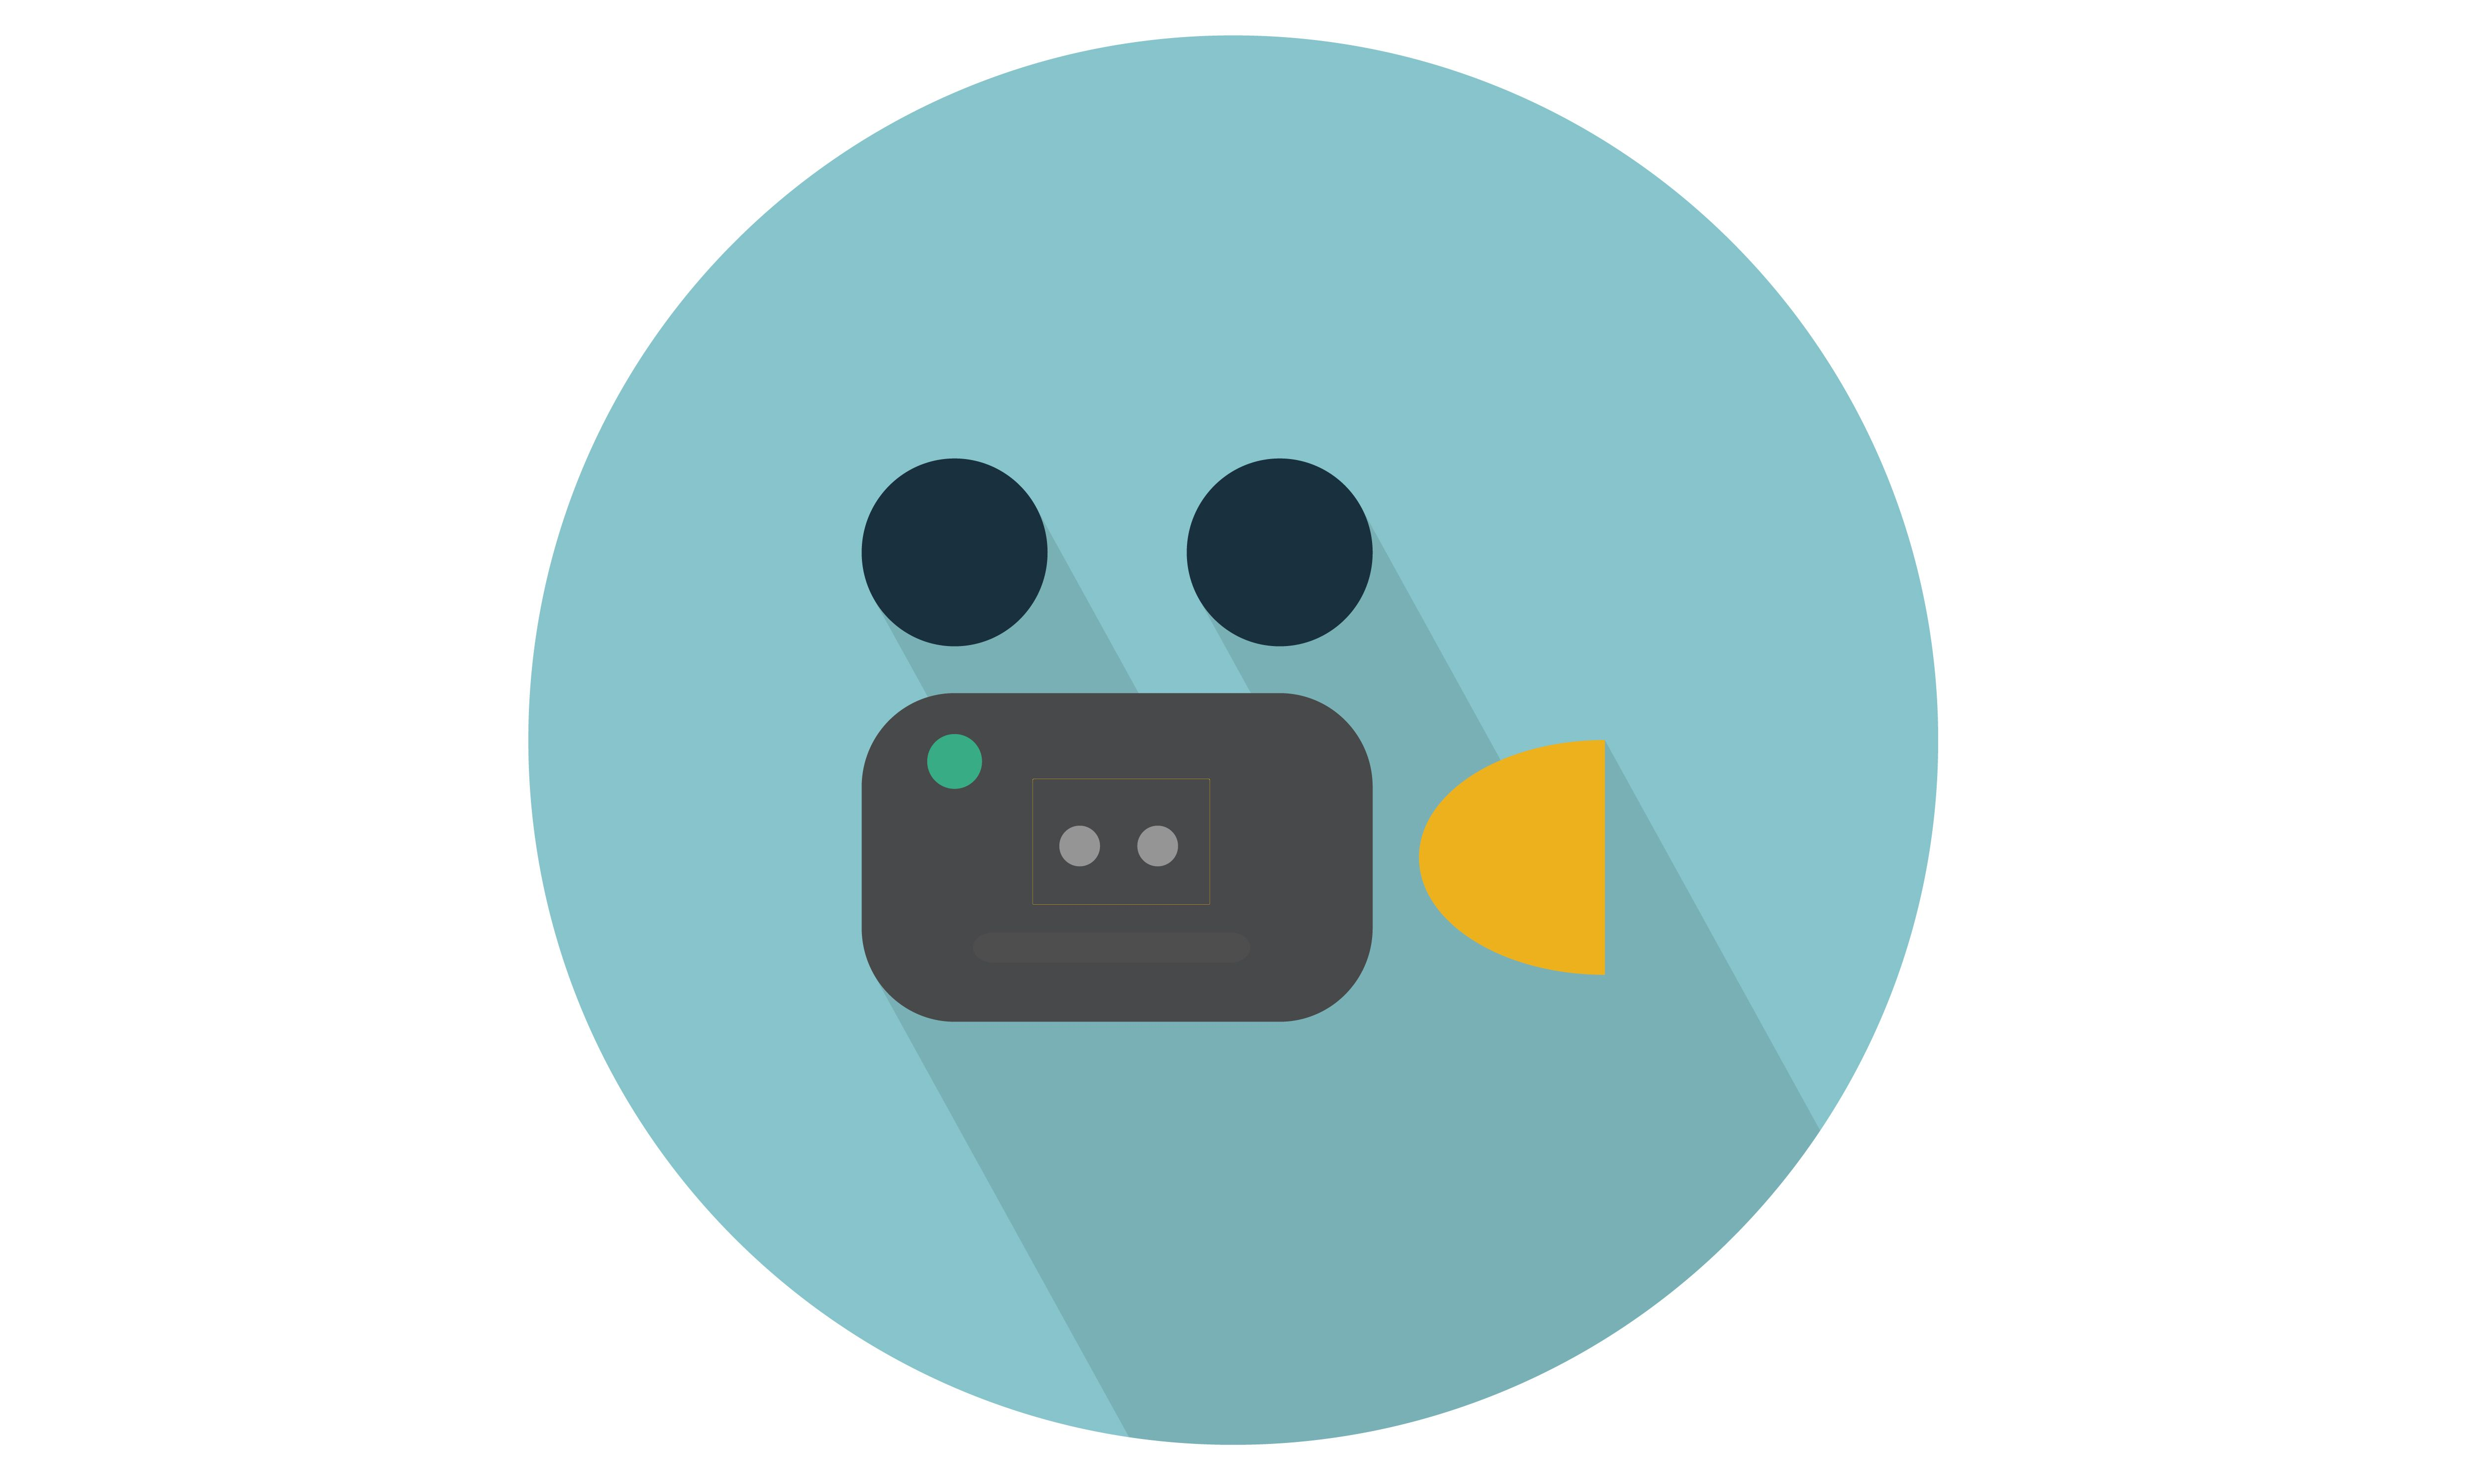 Movie camera vector icon. From Our Range of vector icons